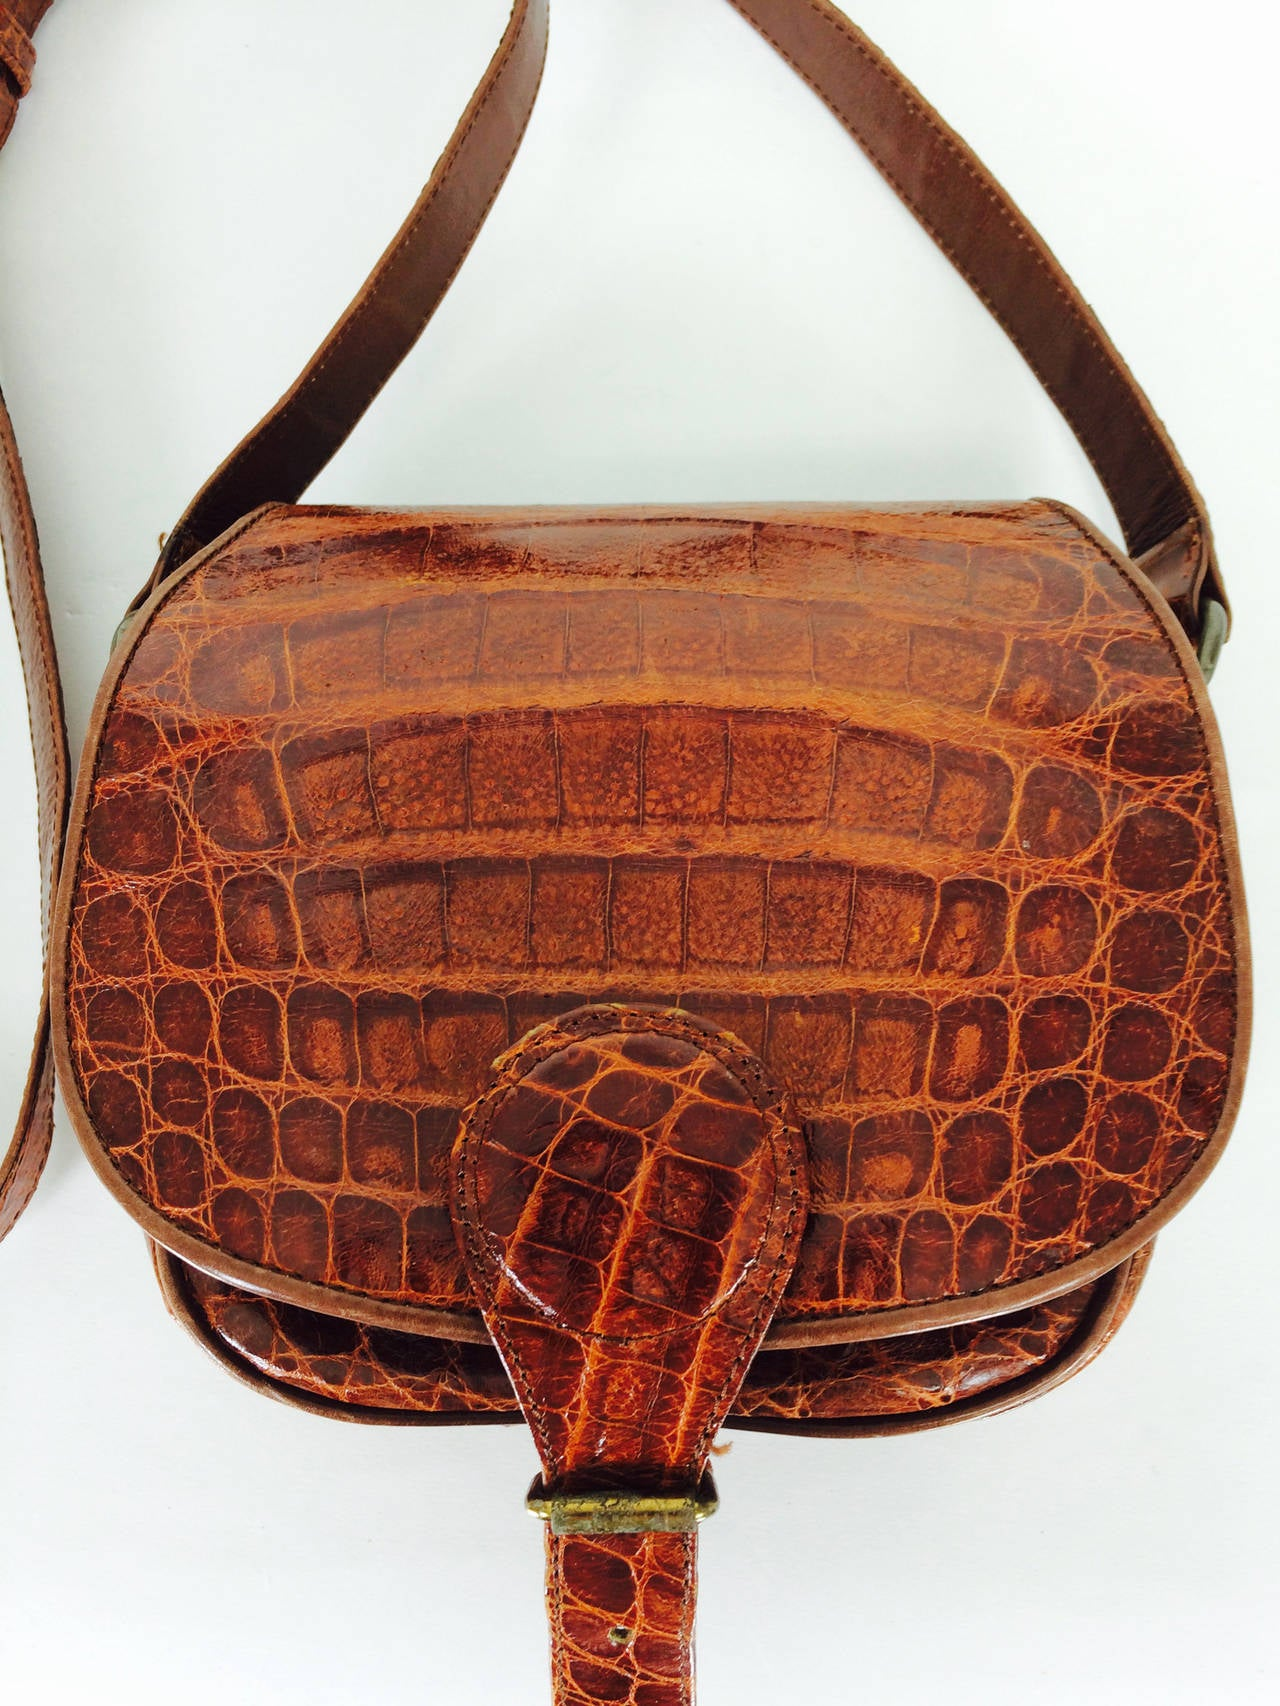 Saddle bag style handbag of cognac leather, faux alligatior from  Neiman Marcus 1980s...Real leather in a warm cognac shade made to look like alligator, the leather is textured & feels real...Flap bag closes with a buckle or hidden snap, your